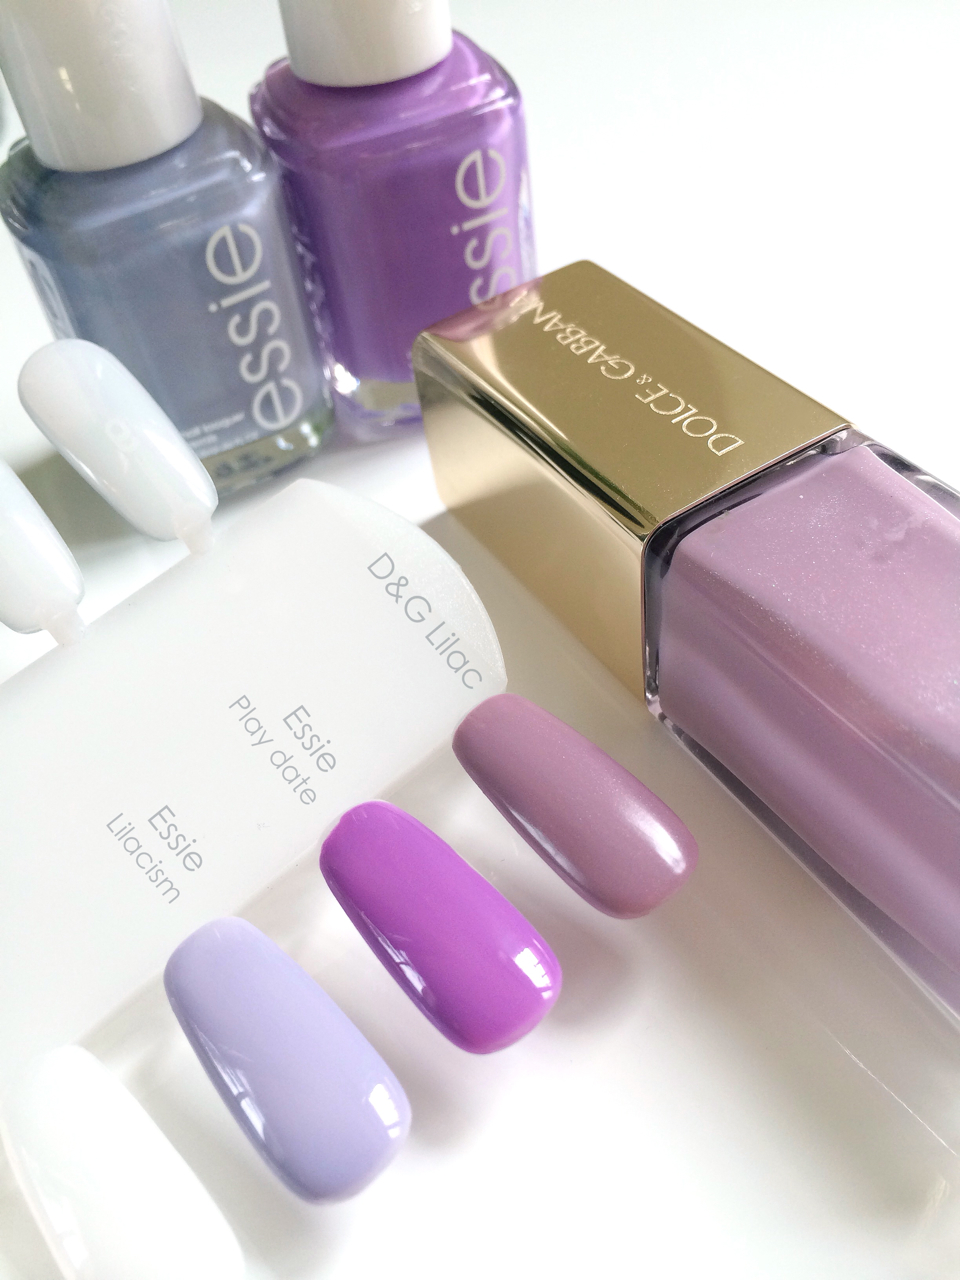 Start with Mineral Fusion Base Coat, then apply nail polish once Base Coat is dry. Allow 3 minutes to dry between coats. Finish with Mineral Fusion Nail Polish Top Coat.5/5(1).